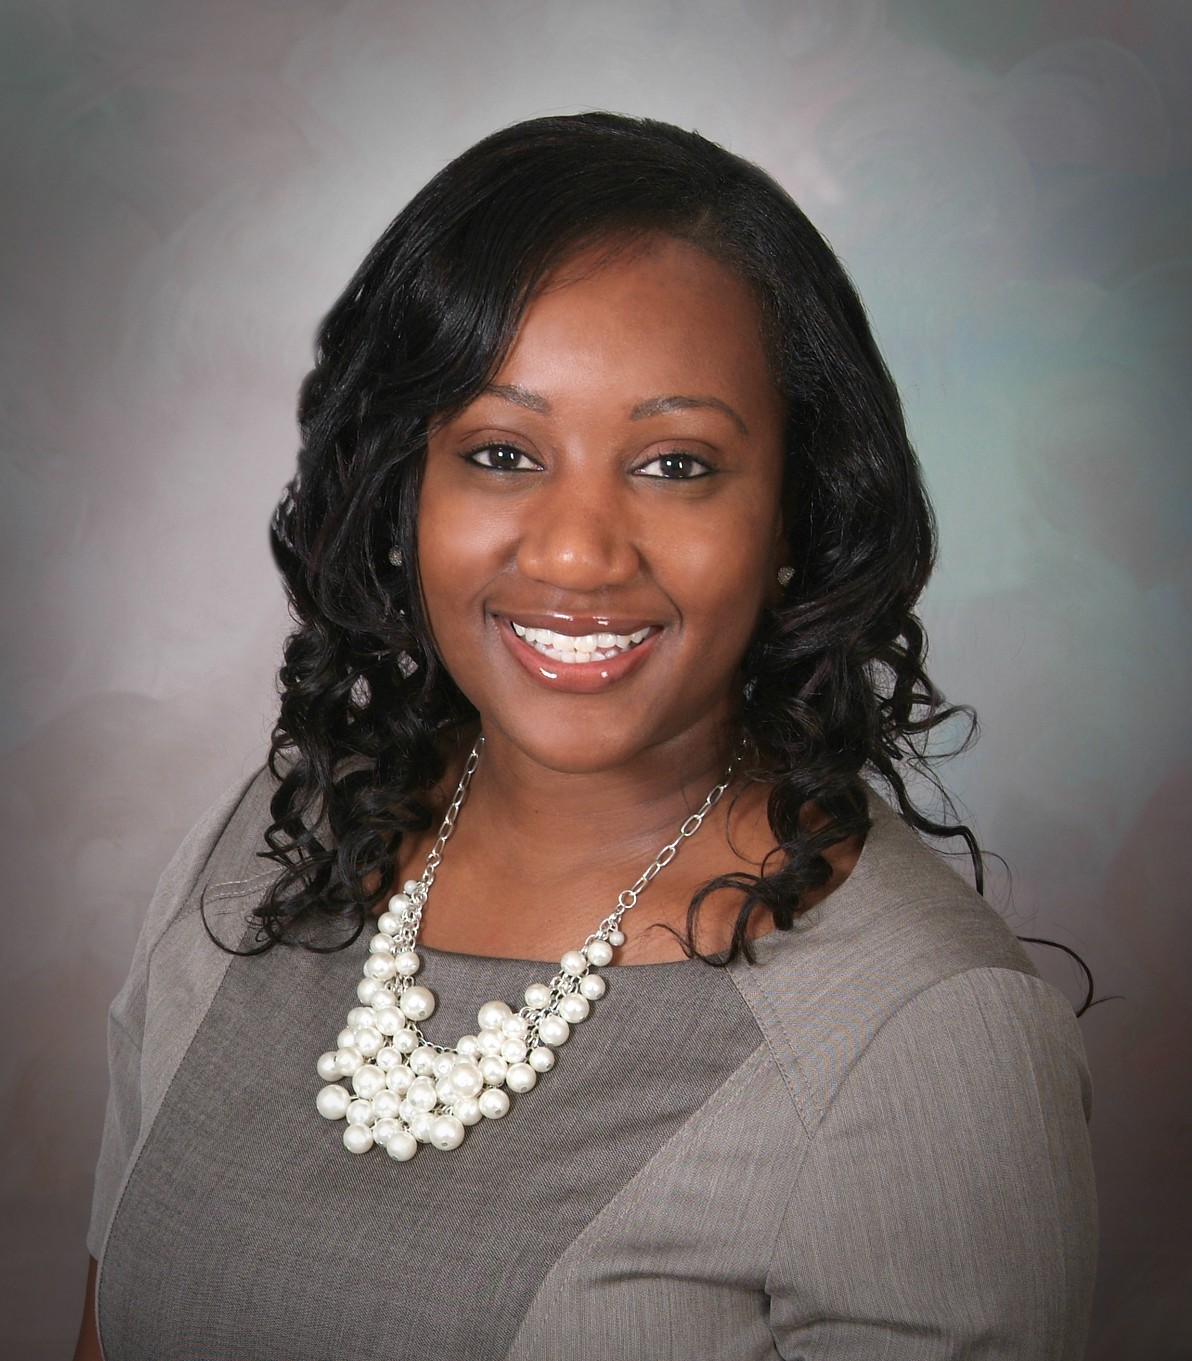 Through the skills obtained at Kent State College of Nursing, Stephanneth has gone on to become an advocate for women's health.